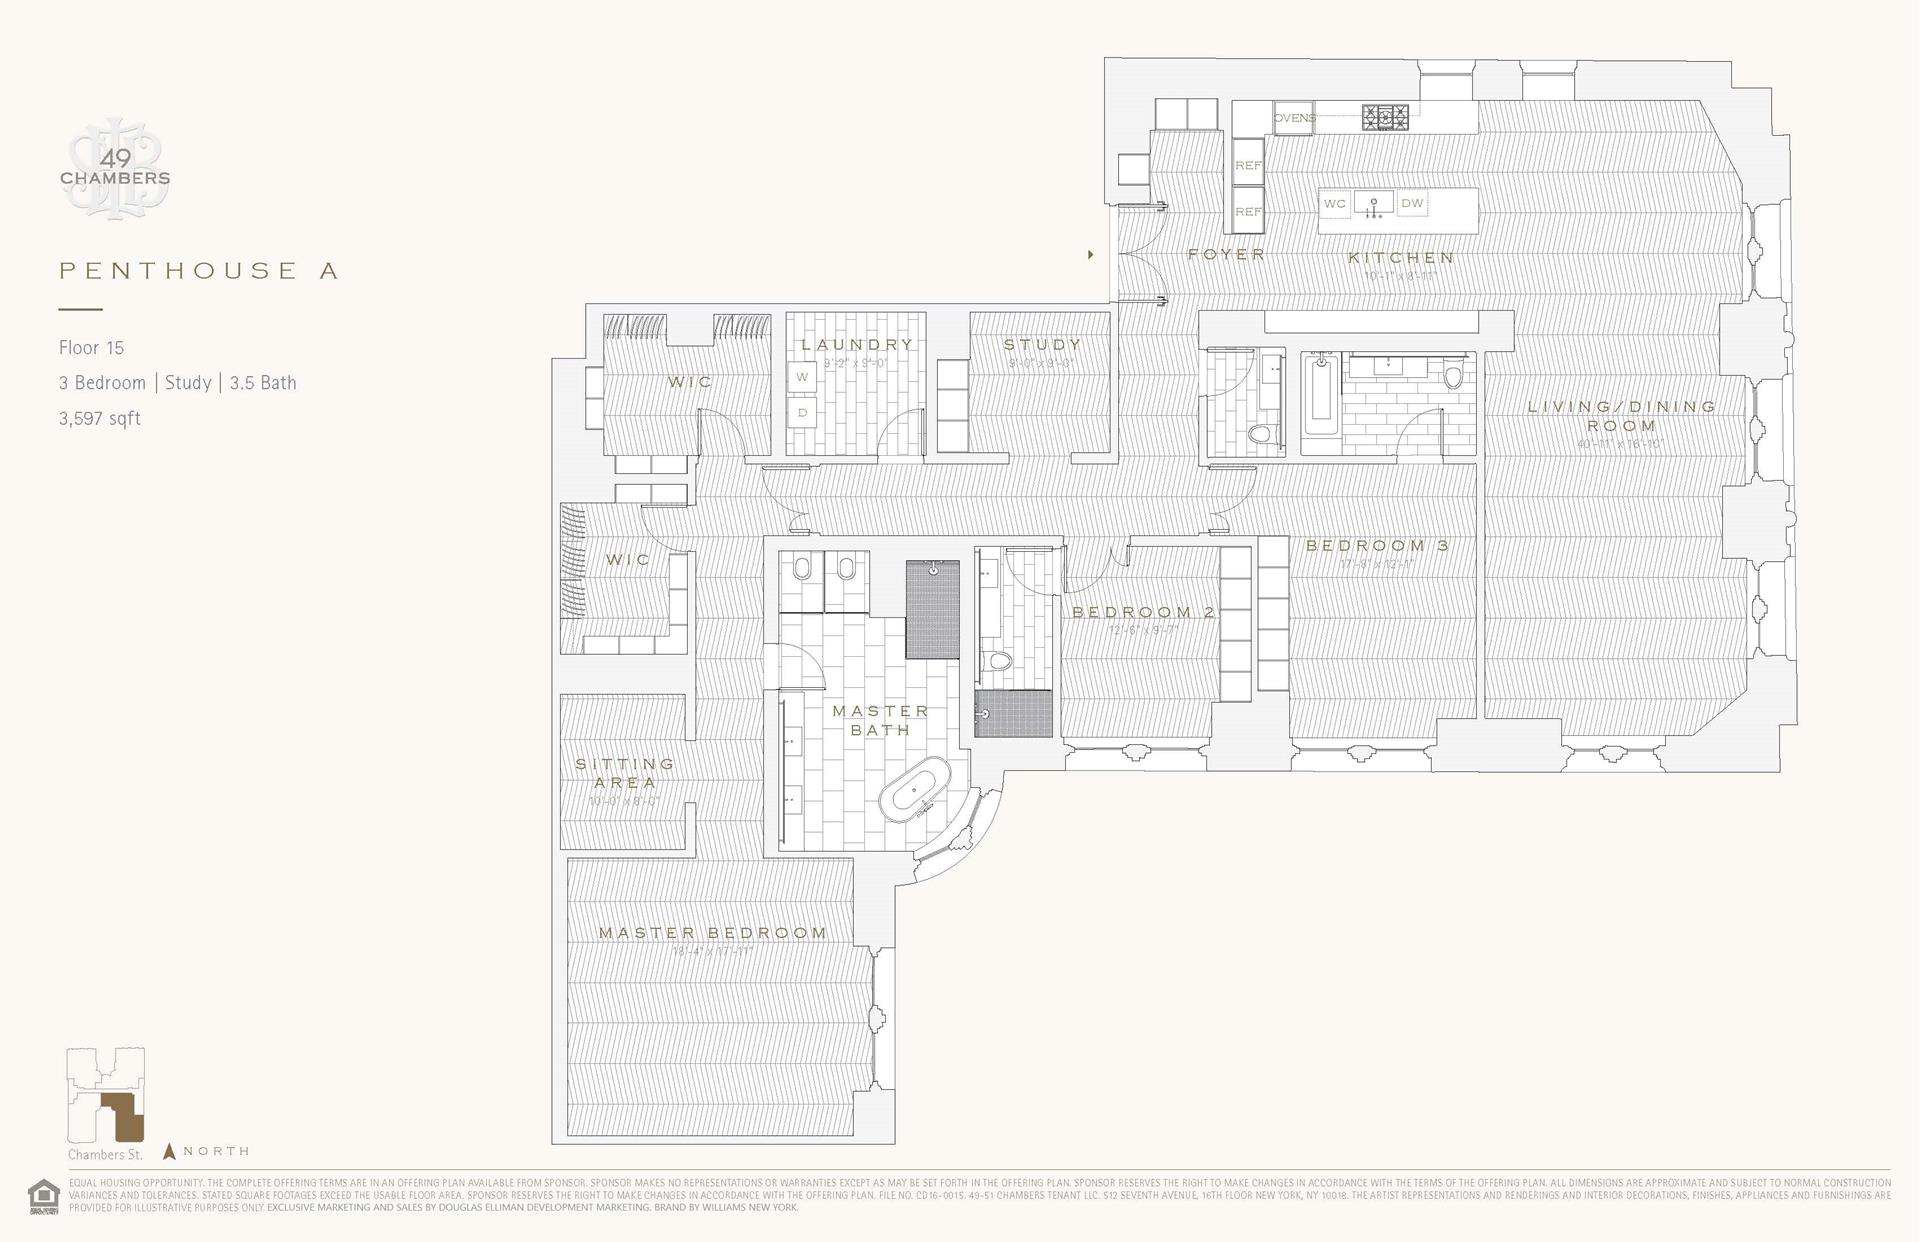 Floor plan of 49 Chambers St, PHA - TriBeCa, New York